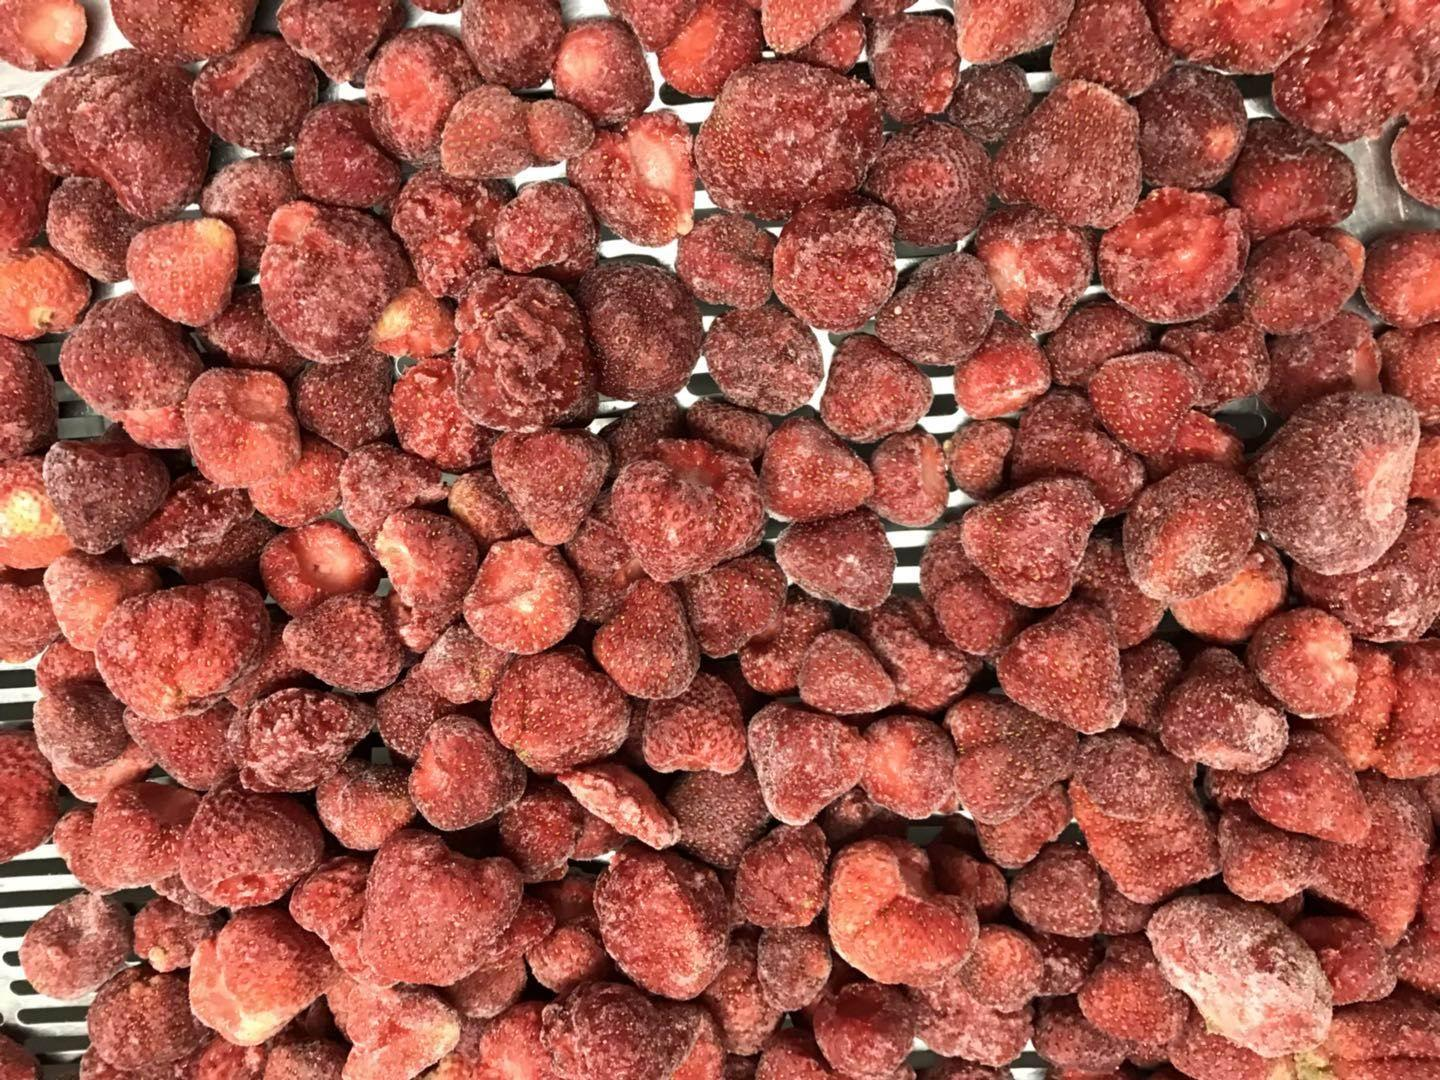 IQF Whole Strawberries,Frozen Whole Strawberries,Grade A/A+B/B/C 13